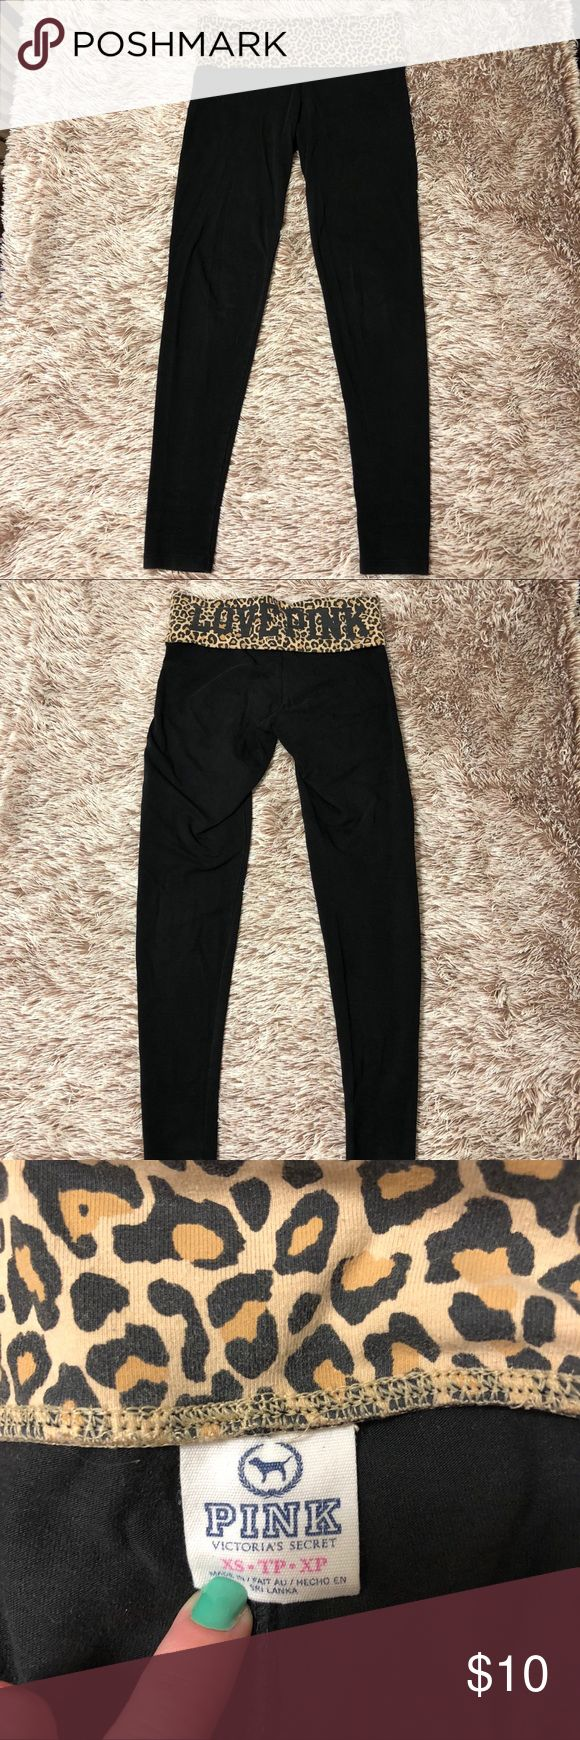 """VS Pink Leopard Leggings Victoria's Secret Pink leopard top leggings. Back says """"LOVE PINK"""".  Perfect for lounging around. Colors are slightly faded due to washing. PINK Pants Leggings"""